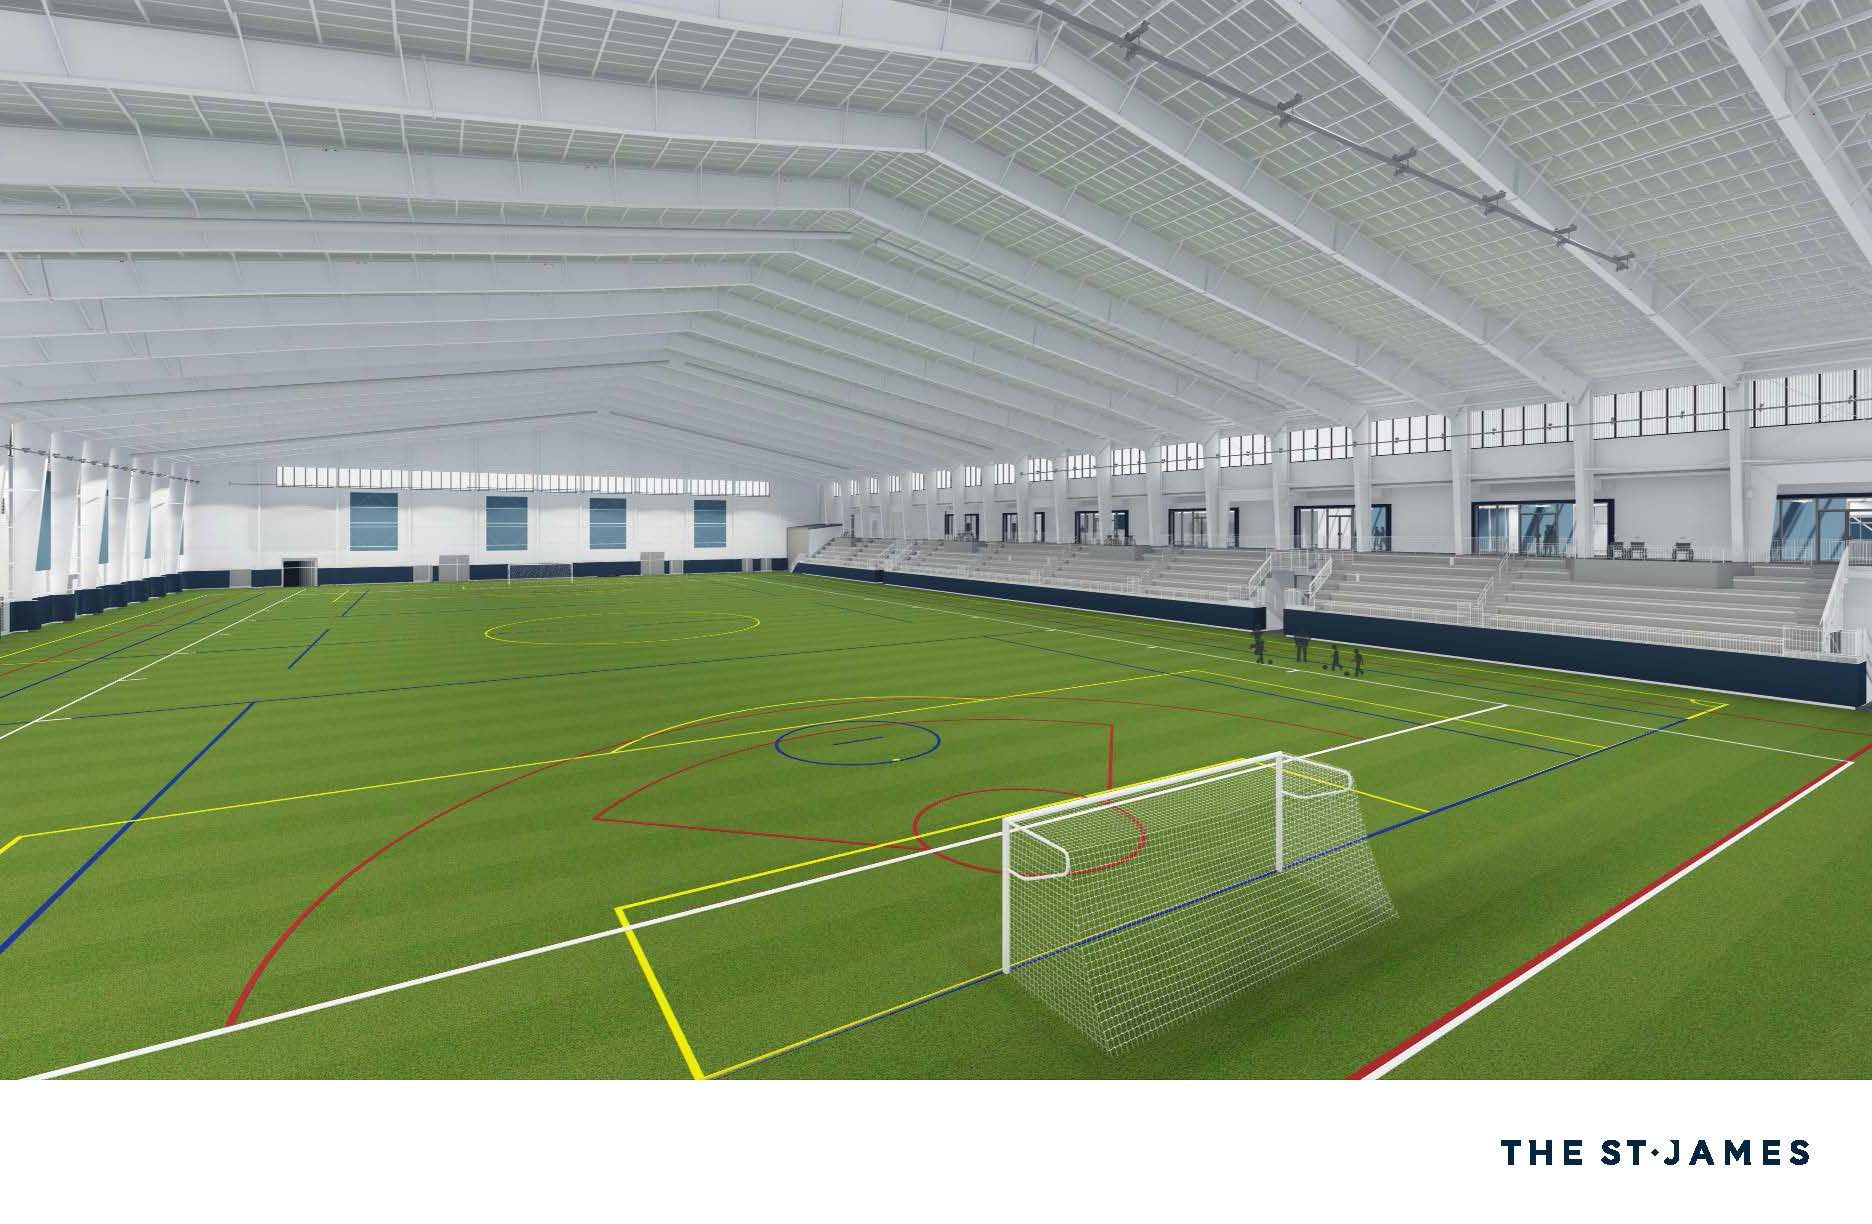 The complex includes a FIFA regulation-sized indoor soccer field. (Courtesy St. James Sports Complex)